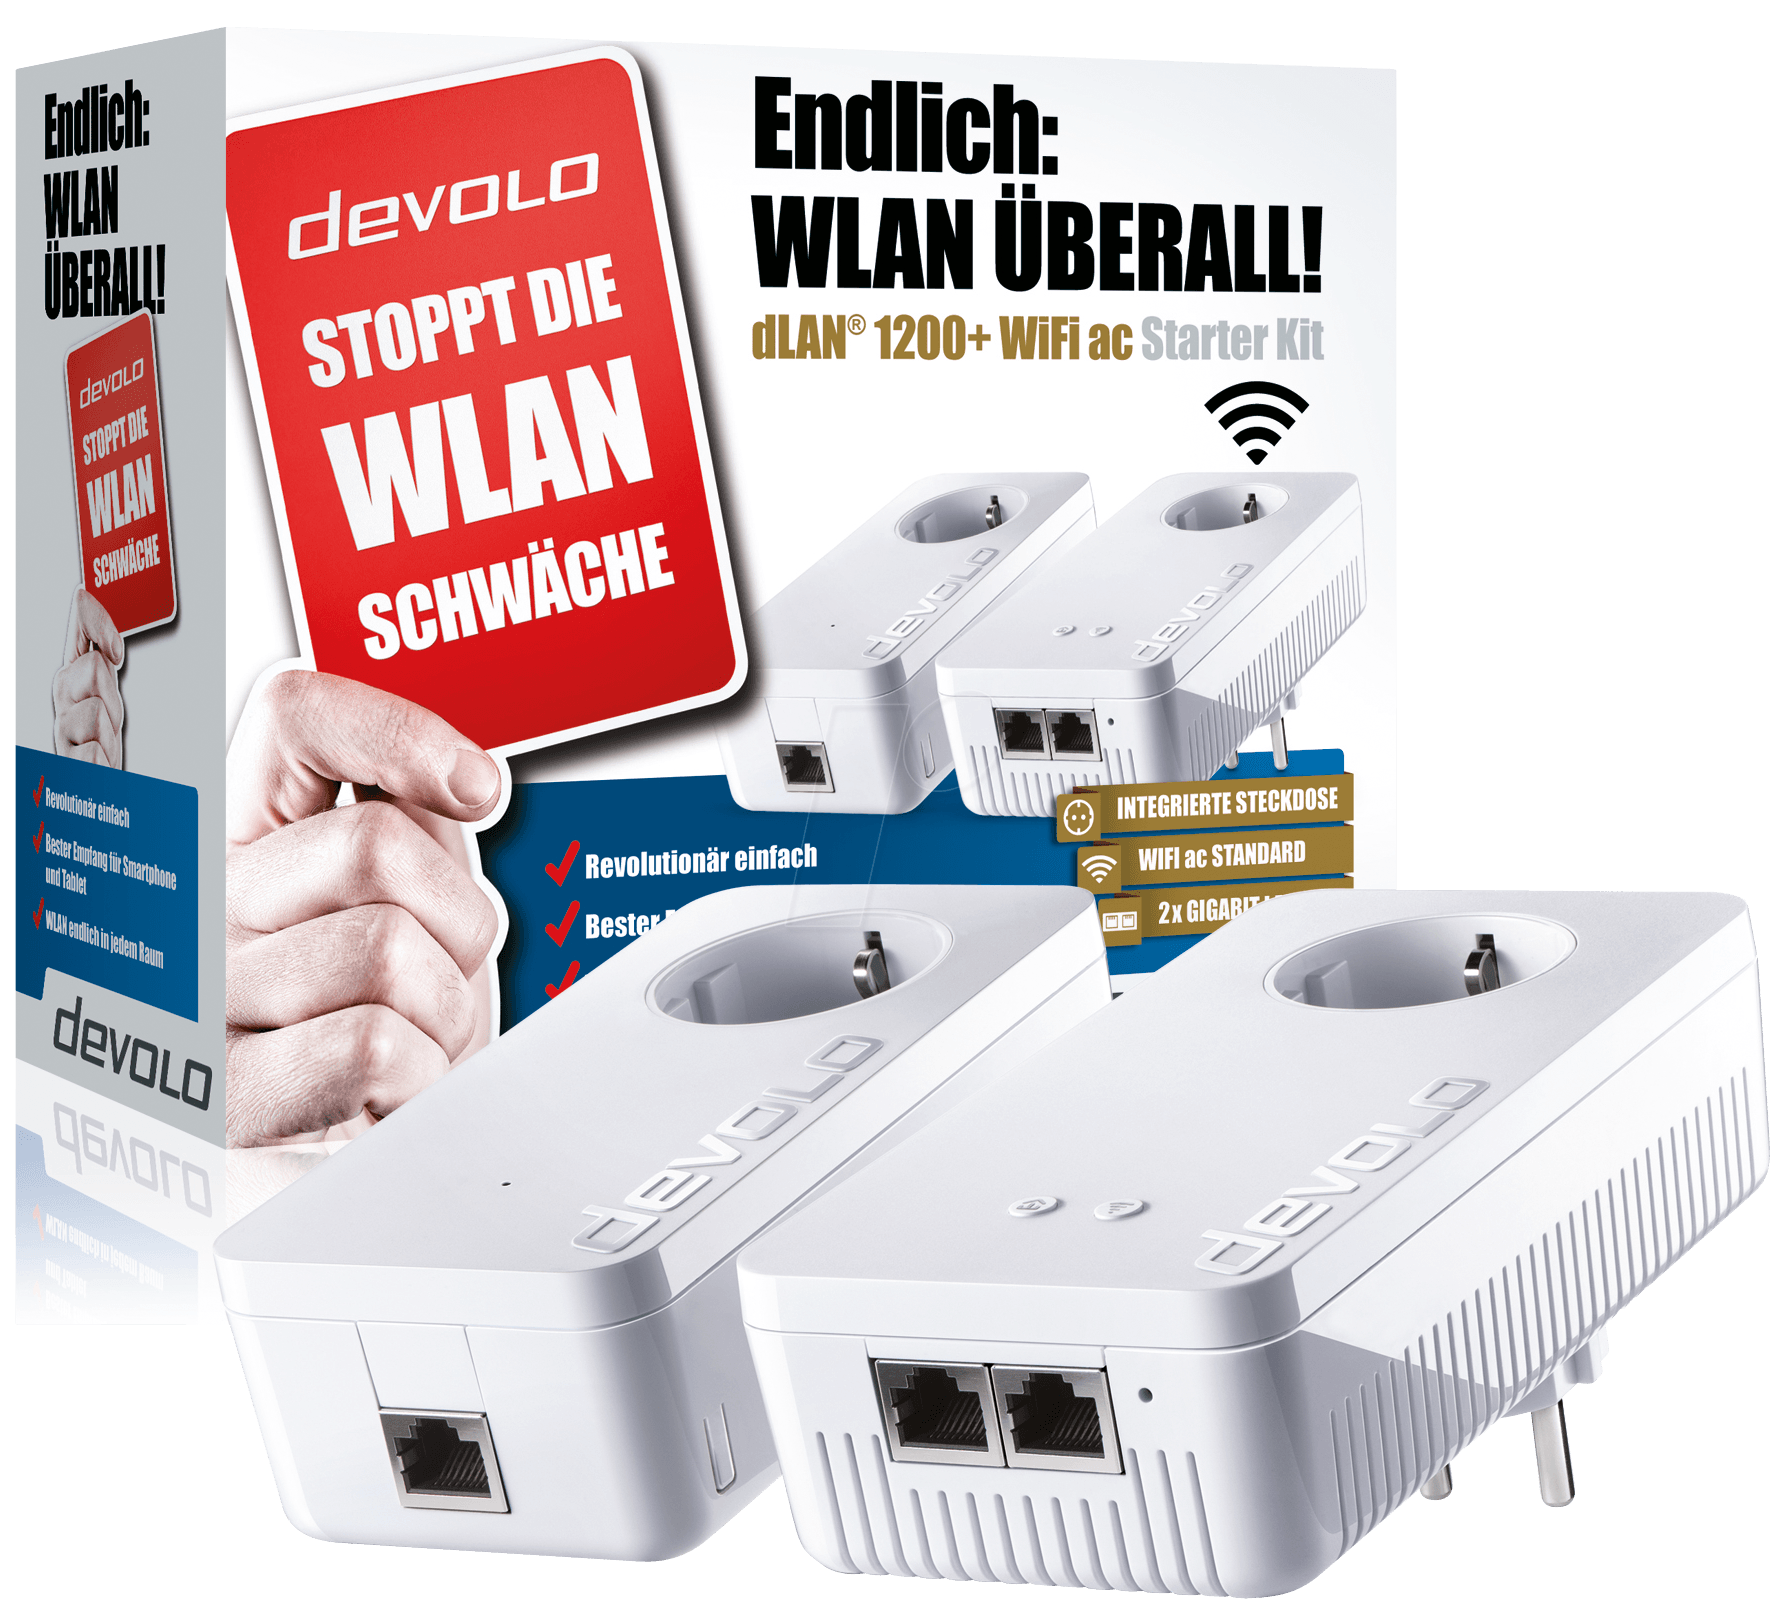 devolo 9390 devolo dlan 1200 wifi ac starter kit 2 units at reichelt elektronik. Black Bedroom Furniture Sets. Home Design Ideas